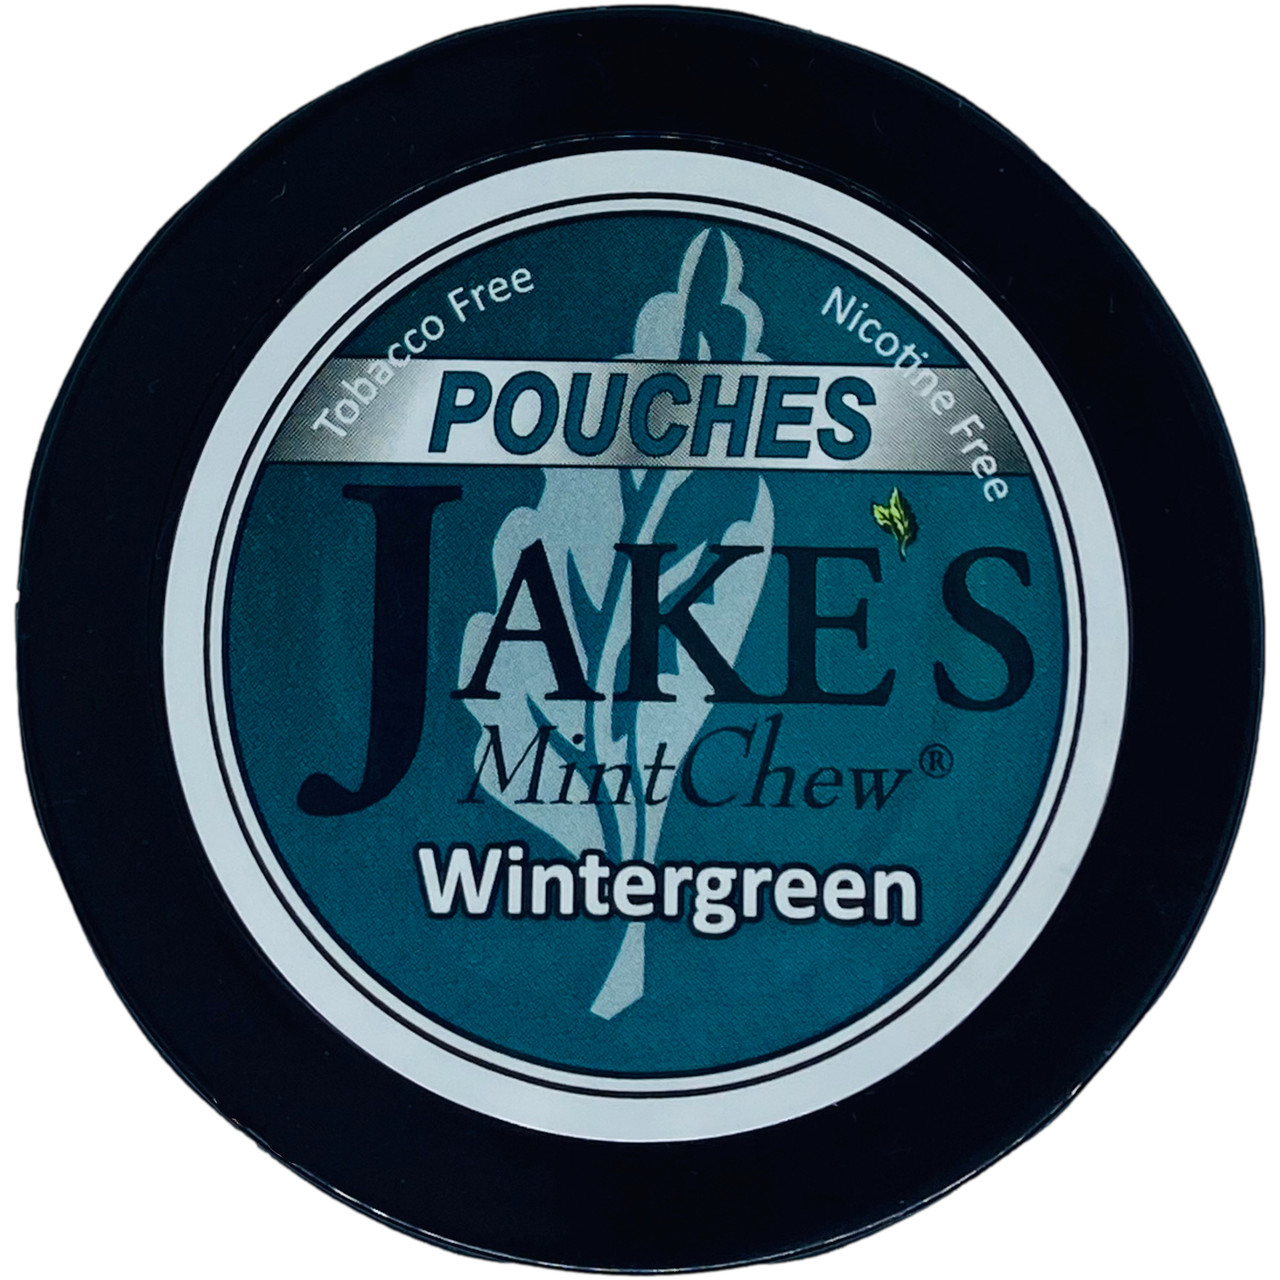 Jake's Mint Chew Pouches Wintergreen 1 Can